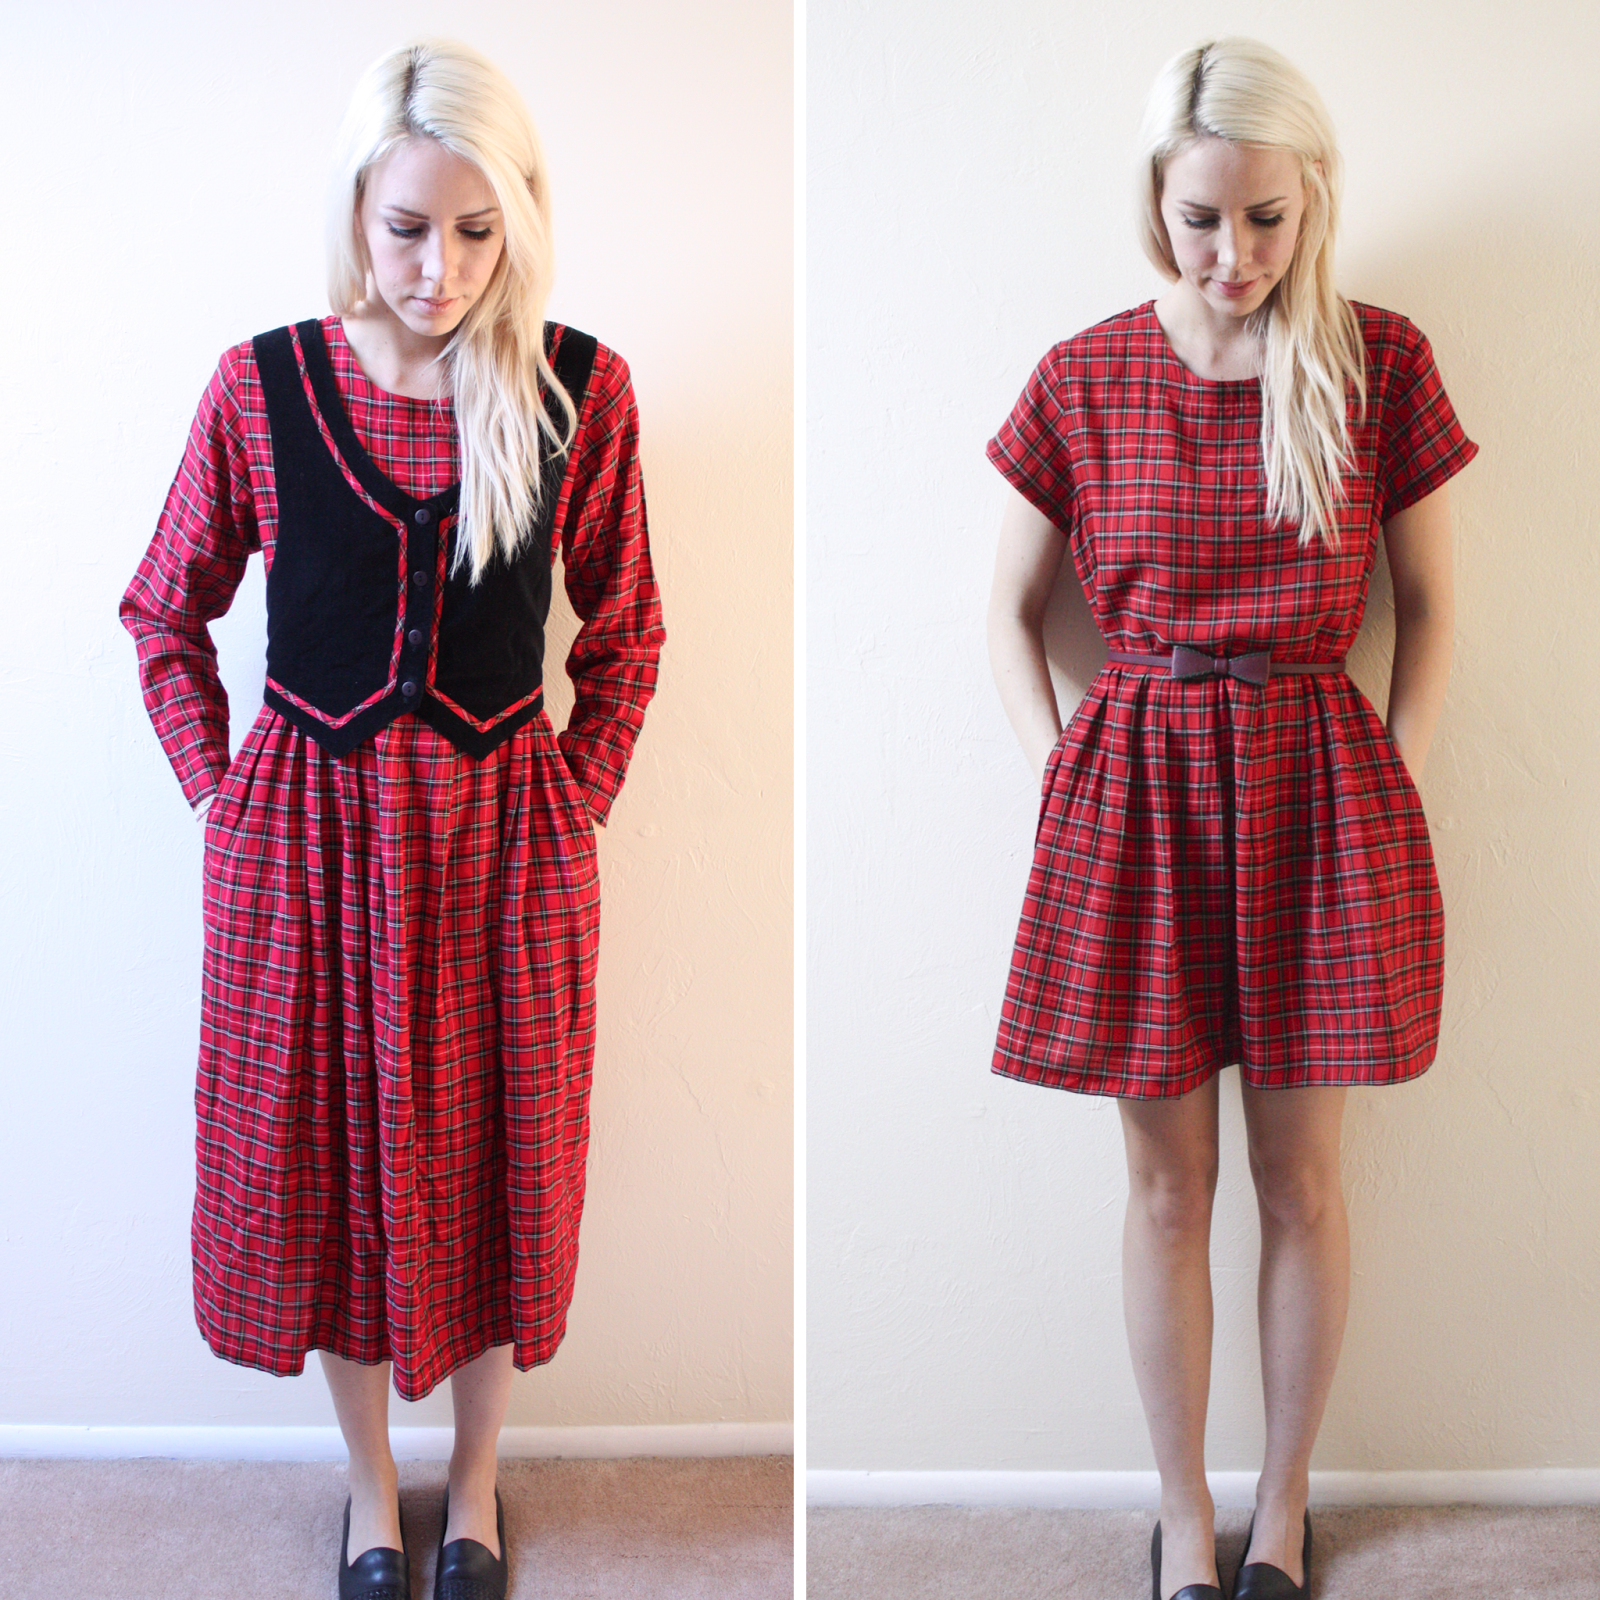 Upcycled Plaid Dress | Refashion clothes, Diy fashion ...